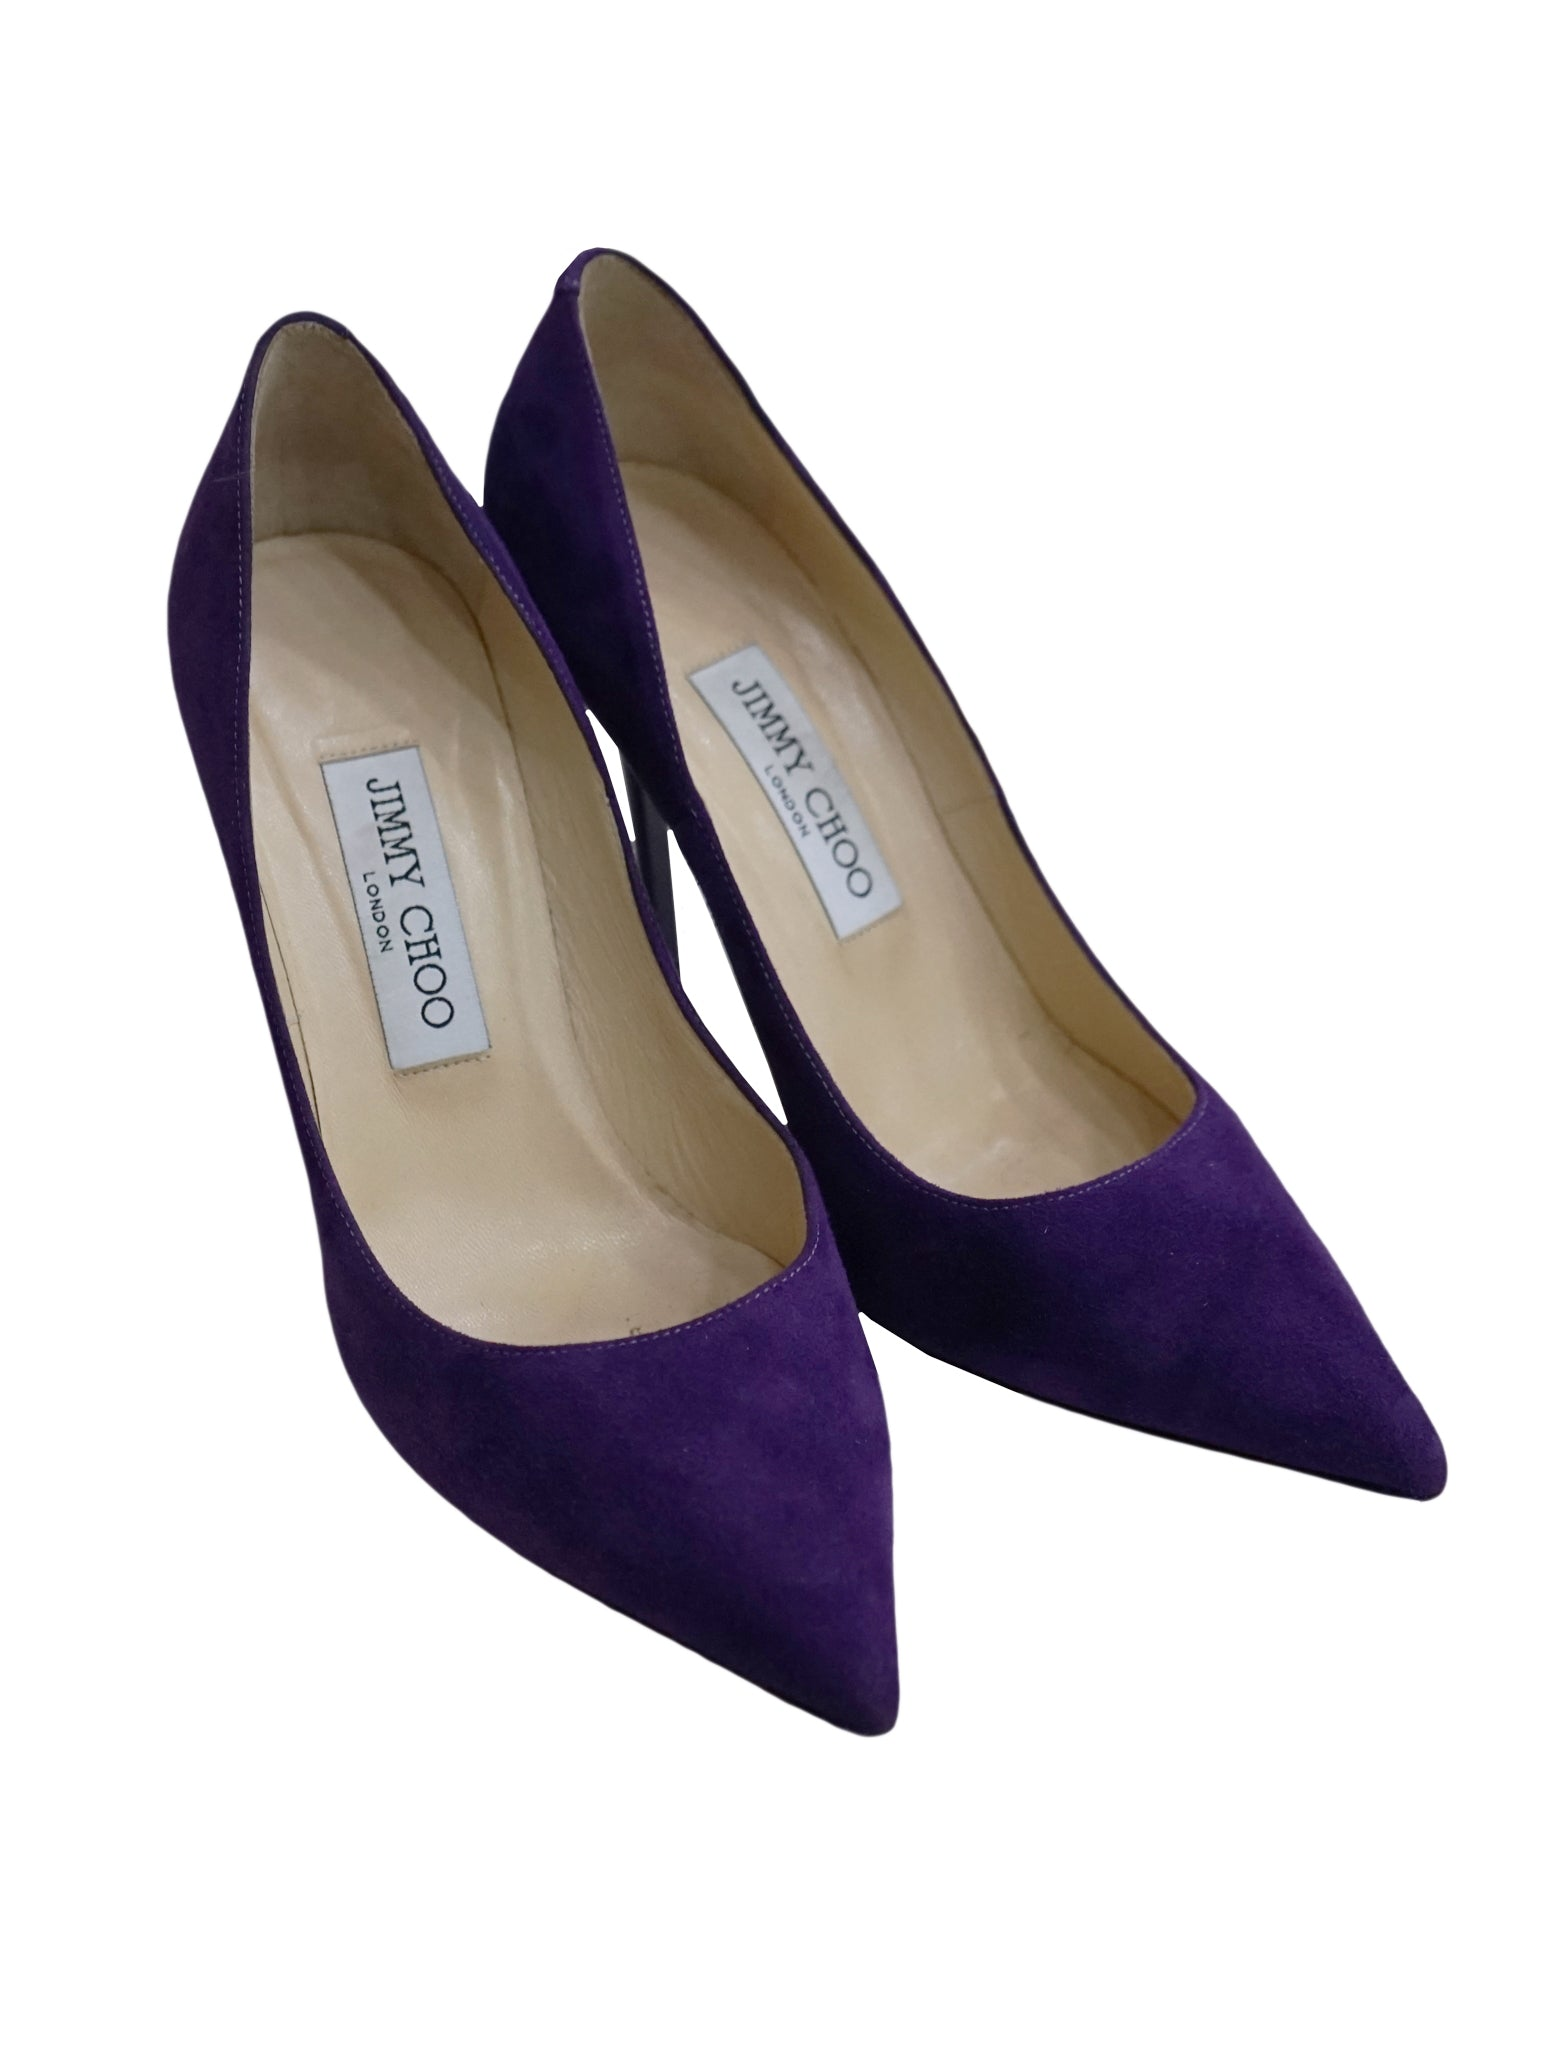 PURPLE SUEDE LEATHER PUMPS